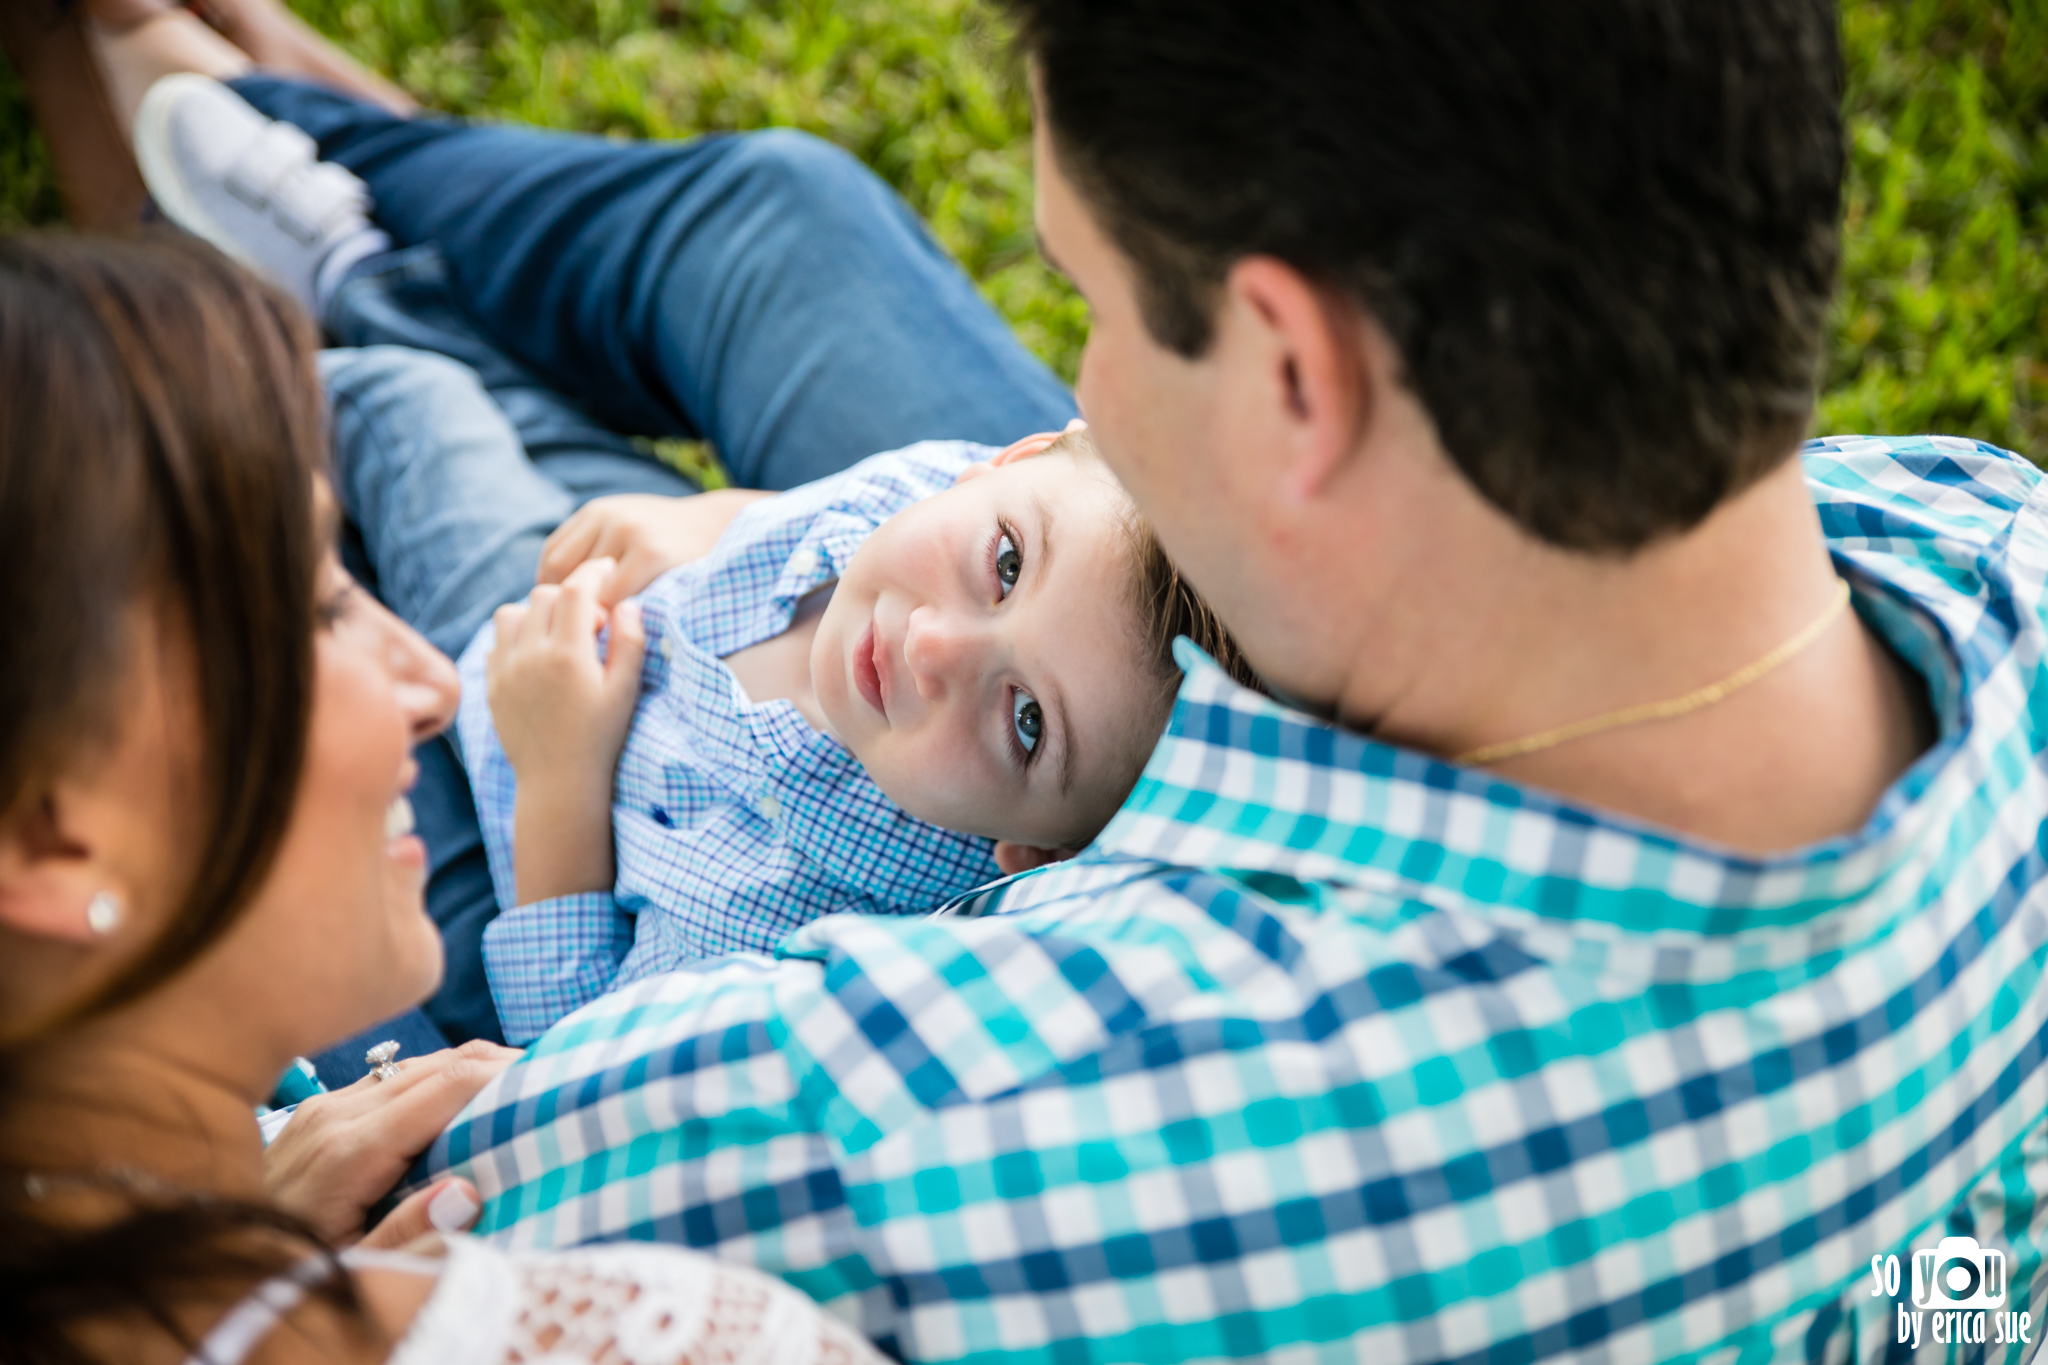 lifestyle-family-photography-so-you-by-erica-sue-davie-8627.jpg